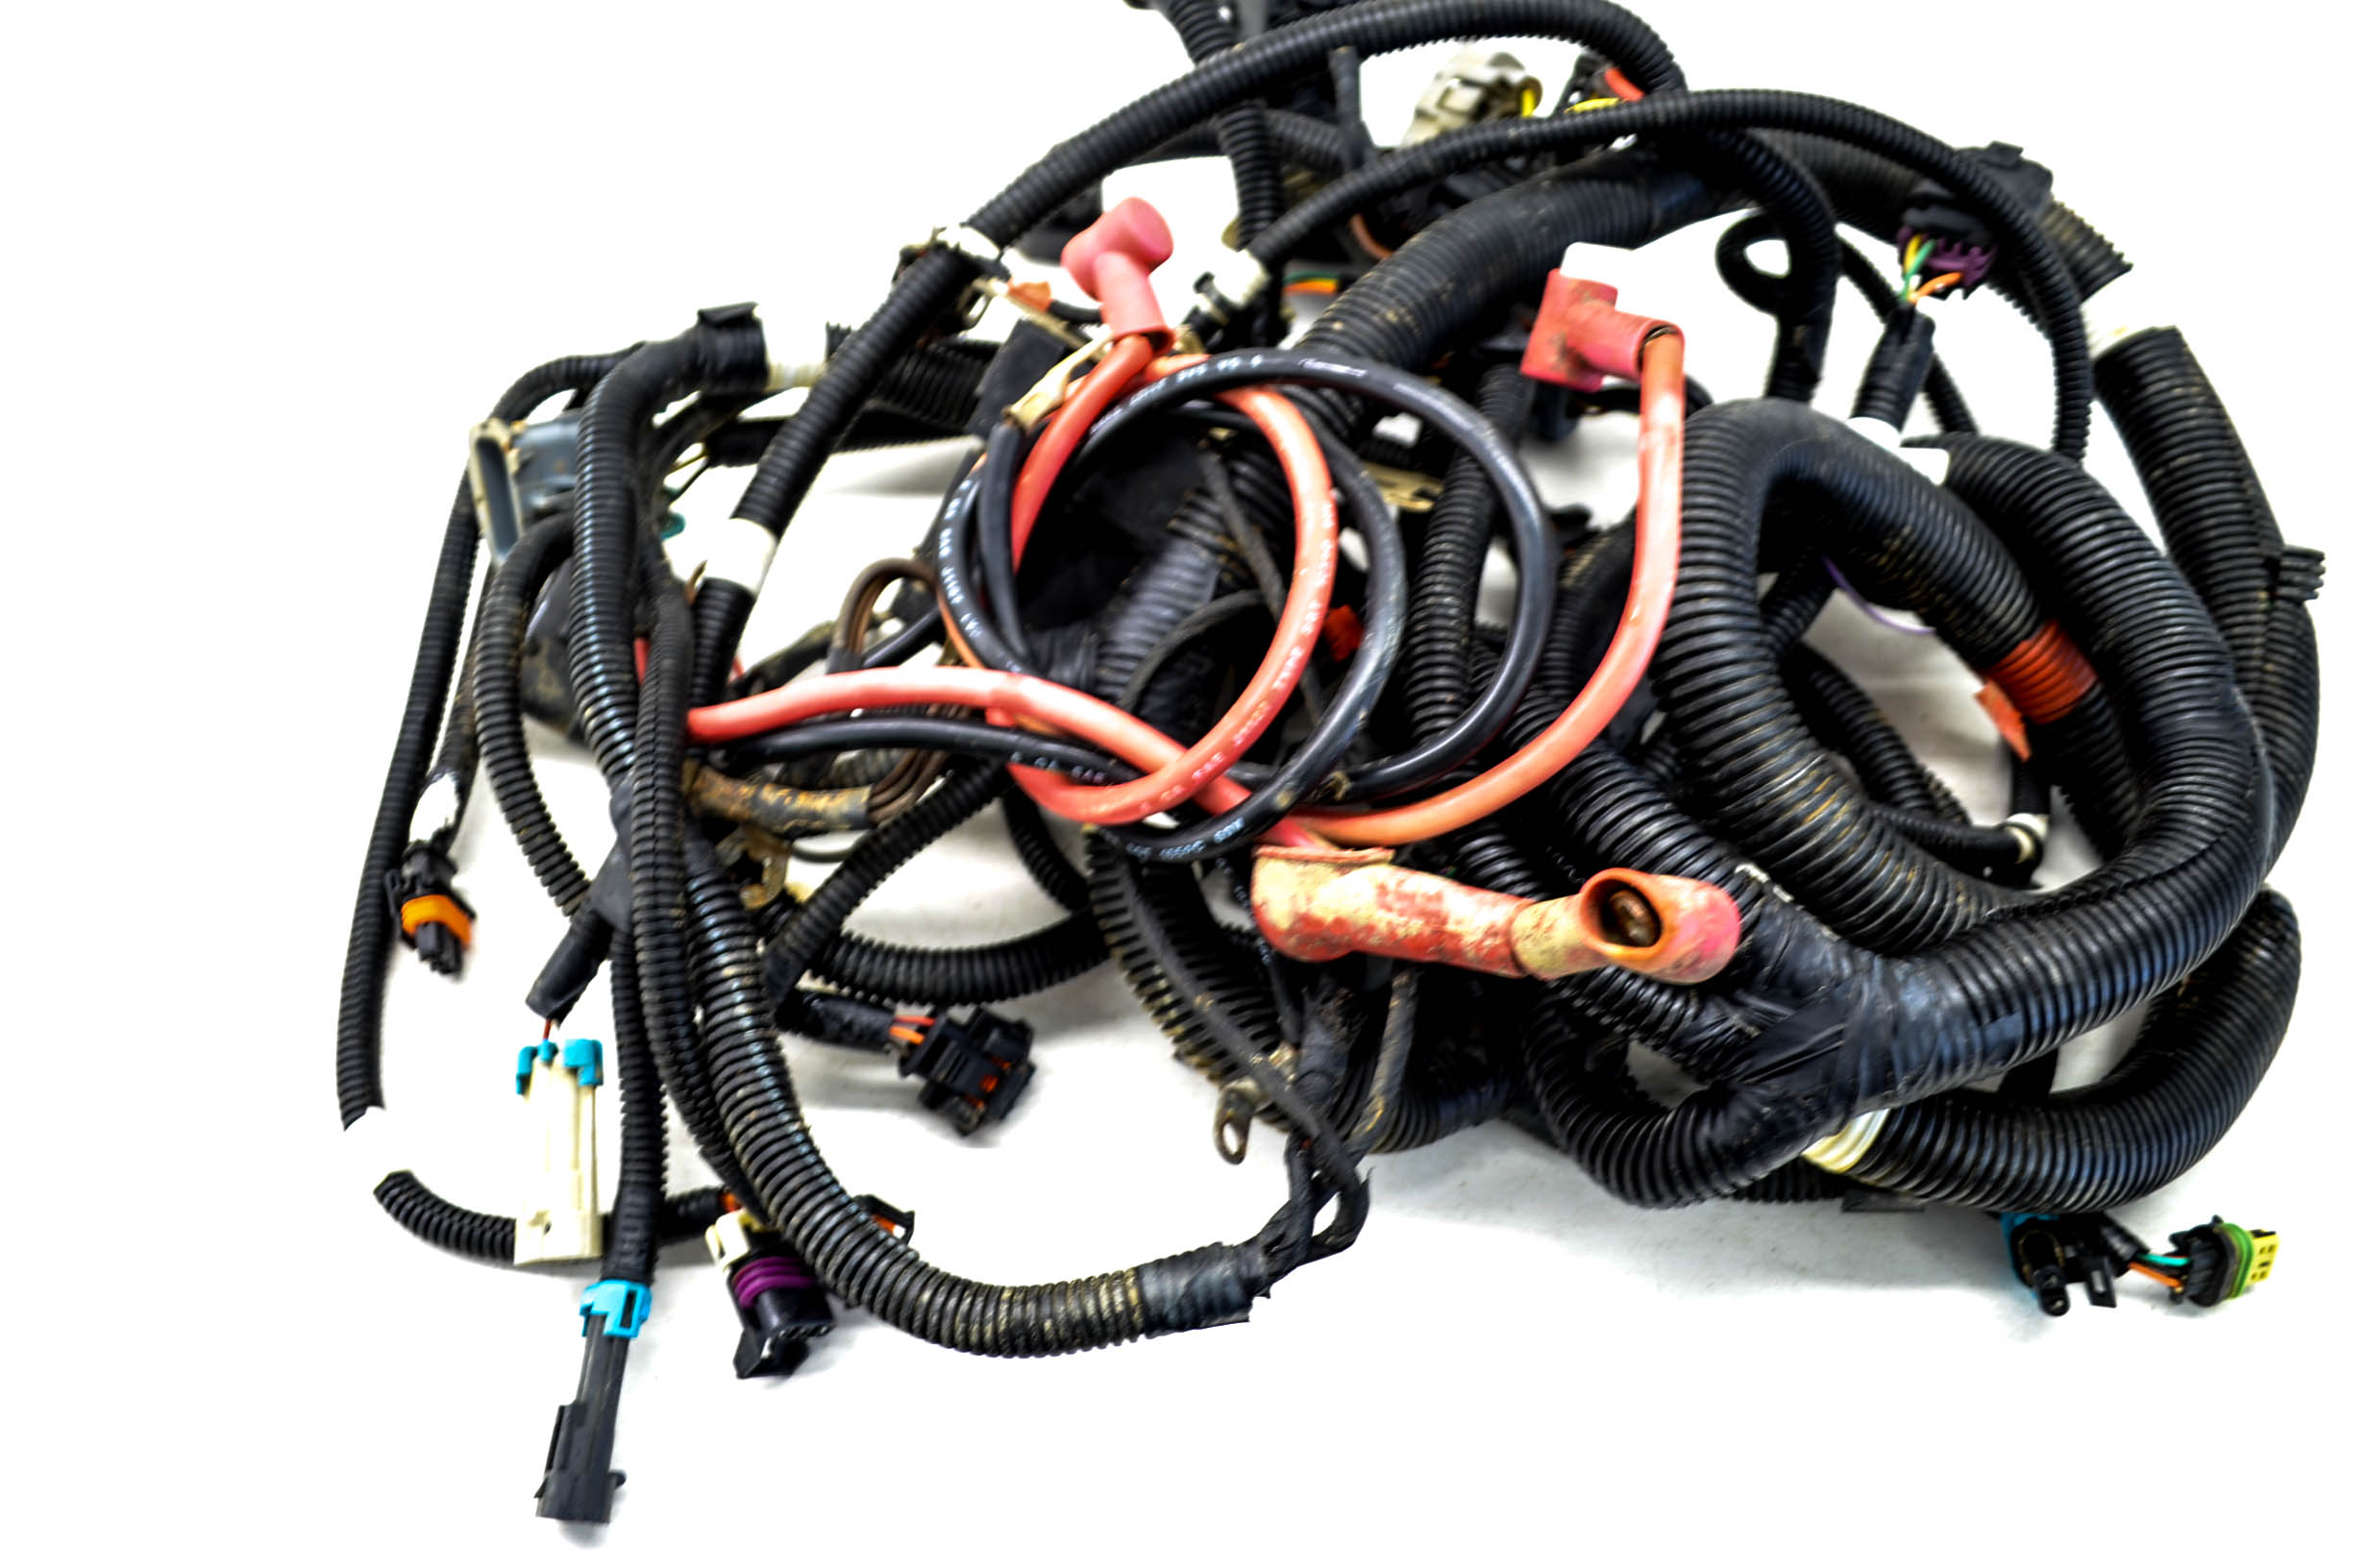 14 Polaris Rzr 800 S 4x4 Wire Harness Electrical Wiring Ebay Connectors Gallery Image